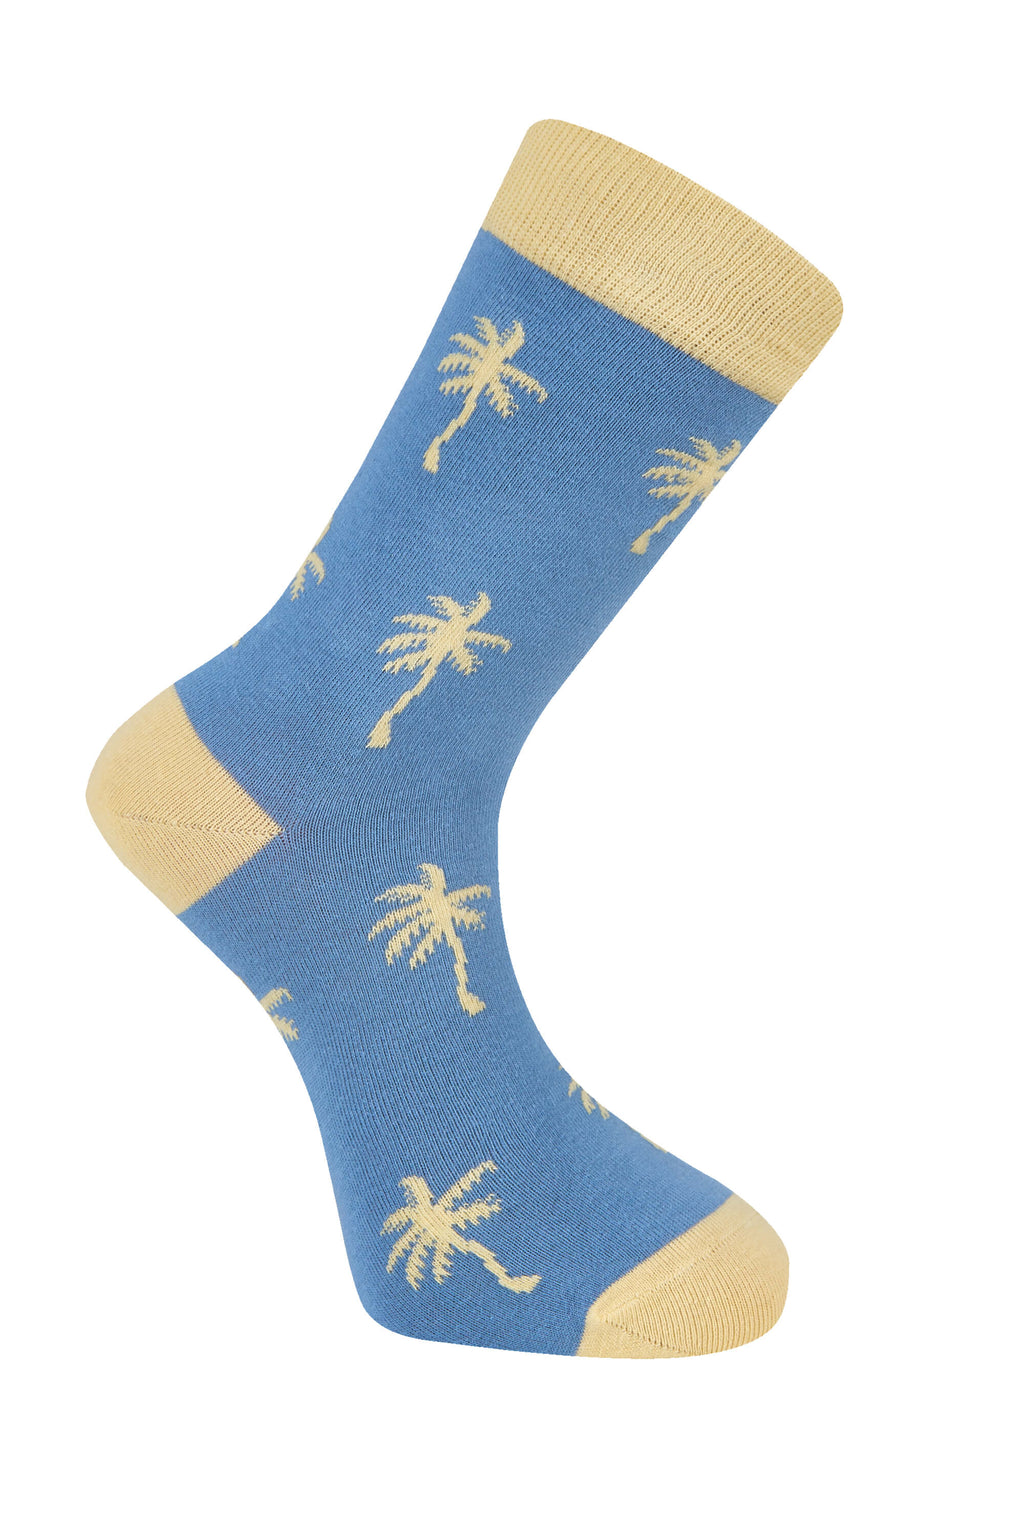 Komodo - Palm Tree Socks - INGAR